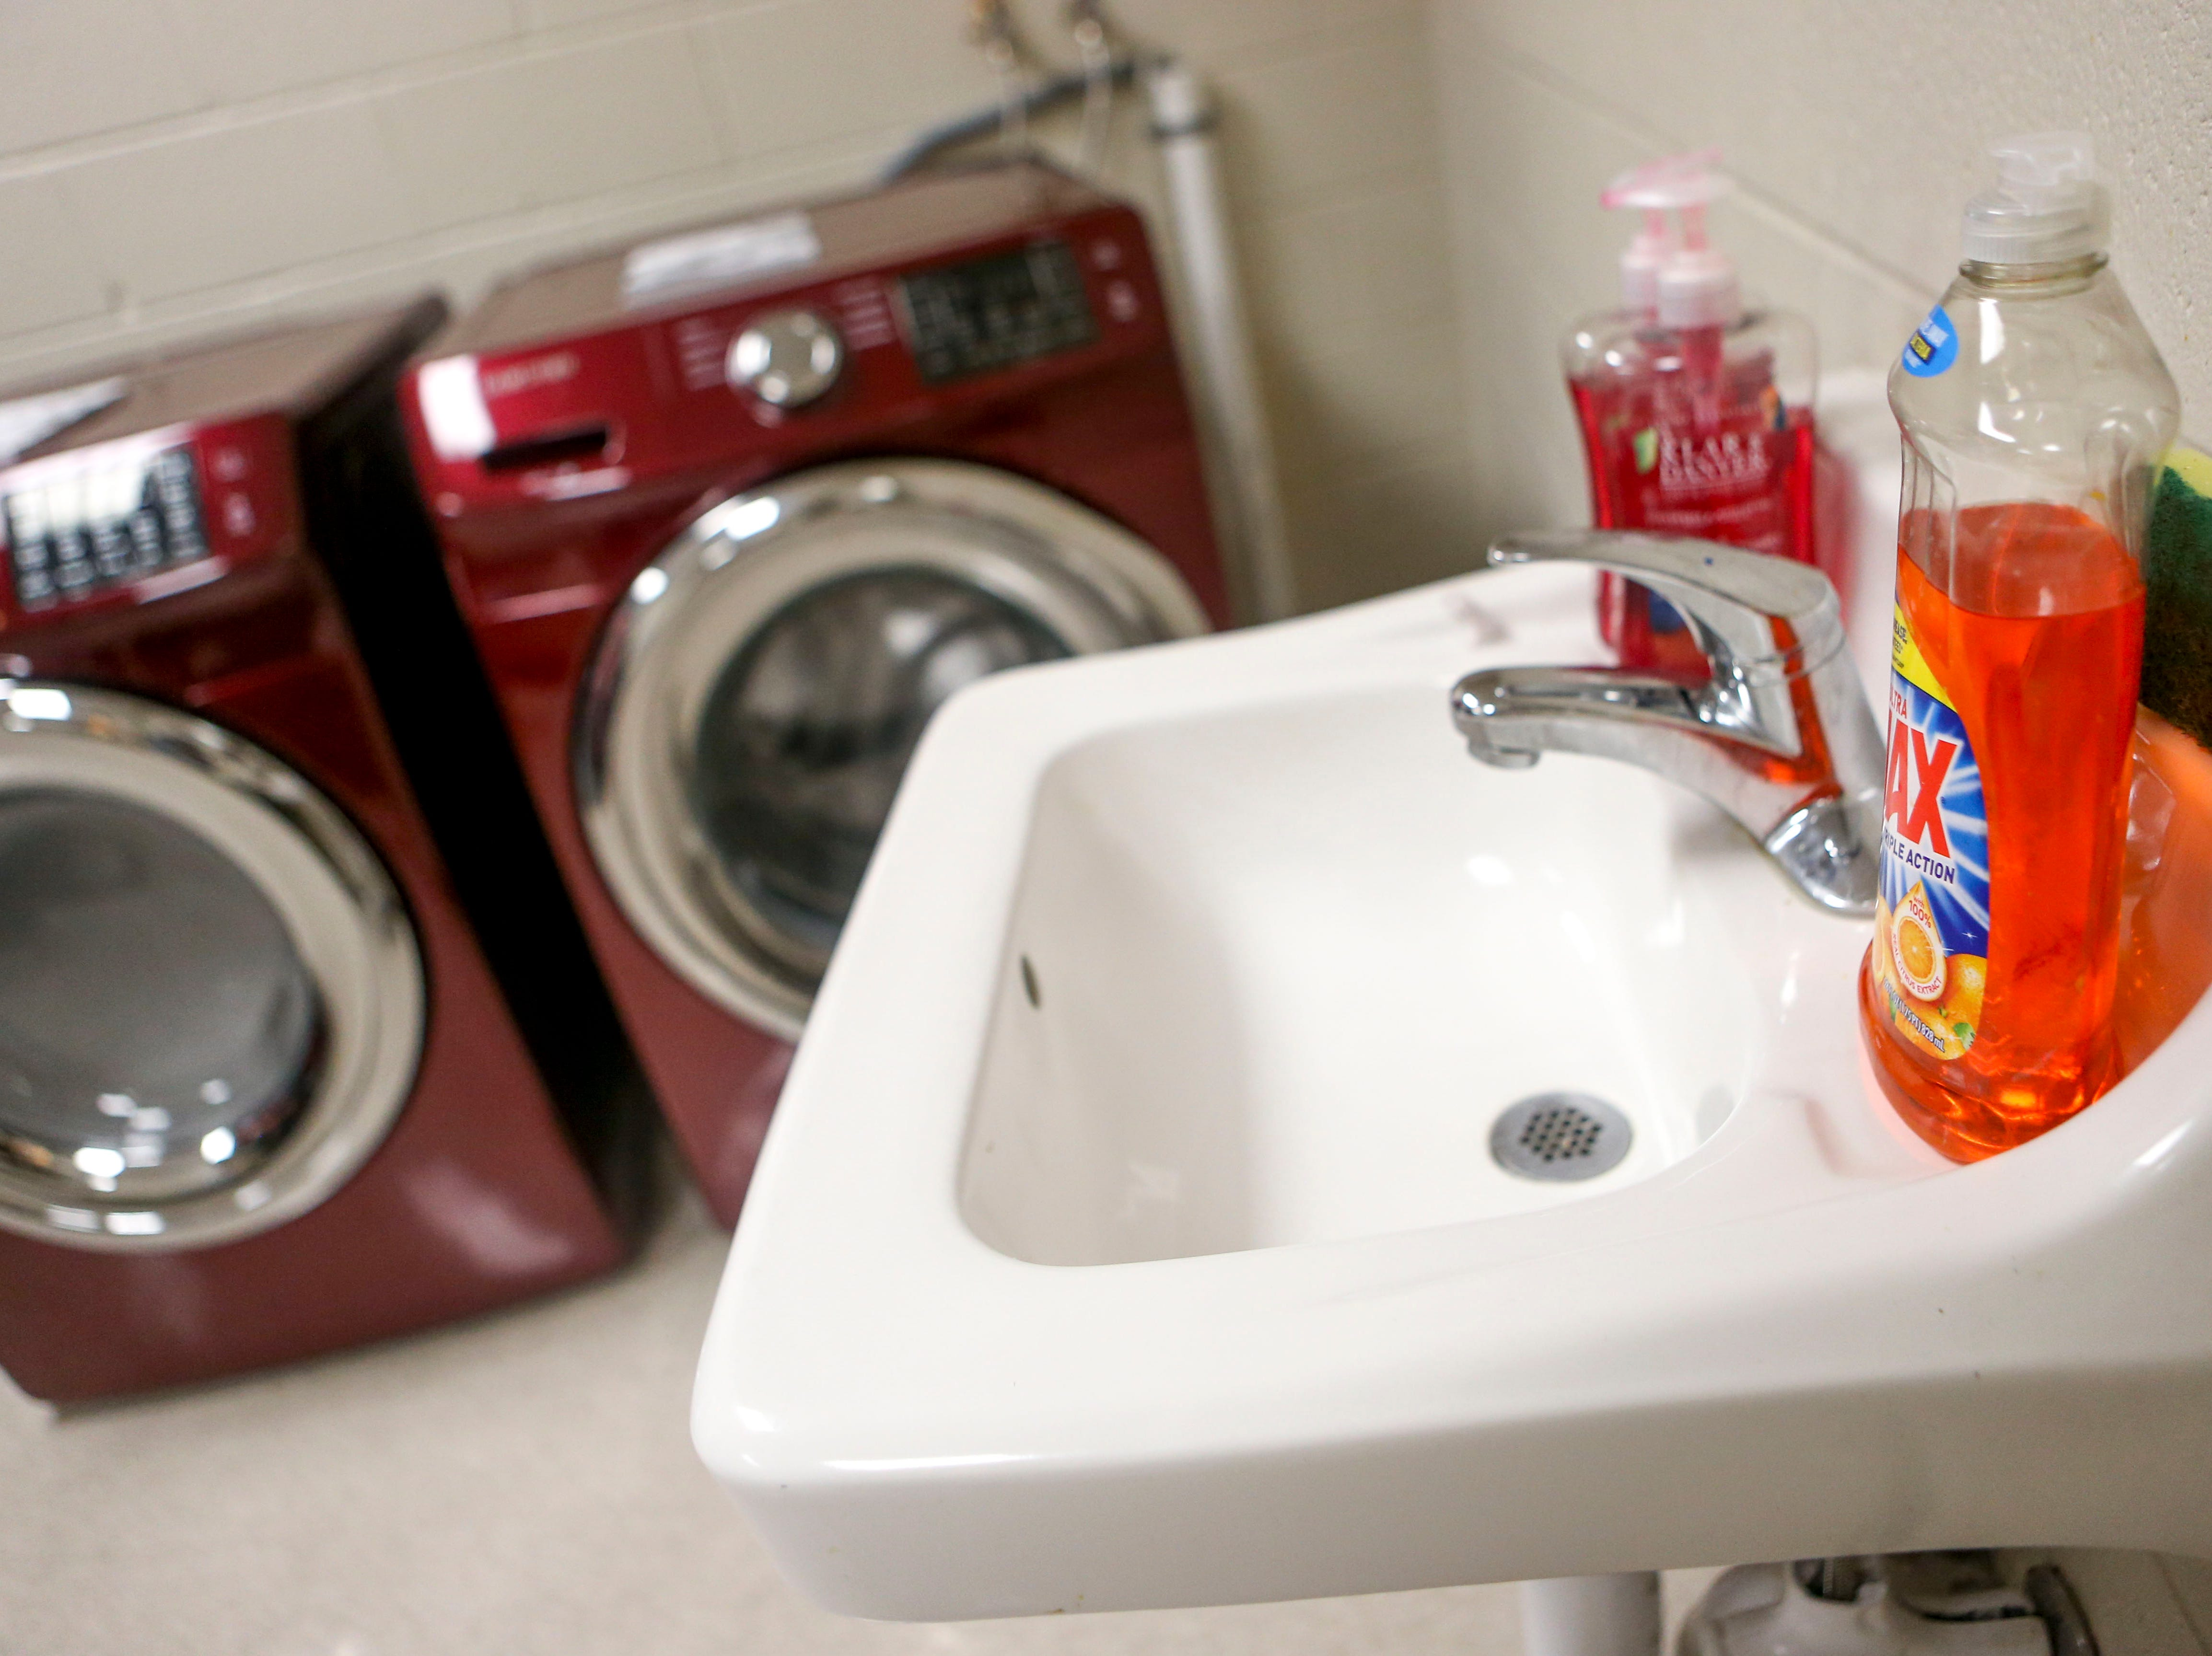 A sink with dish and hand soap can be seen in the same room as a newly donated washer and dryer set at Jackson Careers and Technology Middle School  in Jackson, Tenn., on Friday, Jan. 18, 2019.